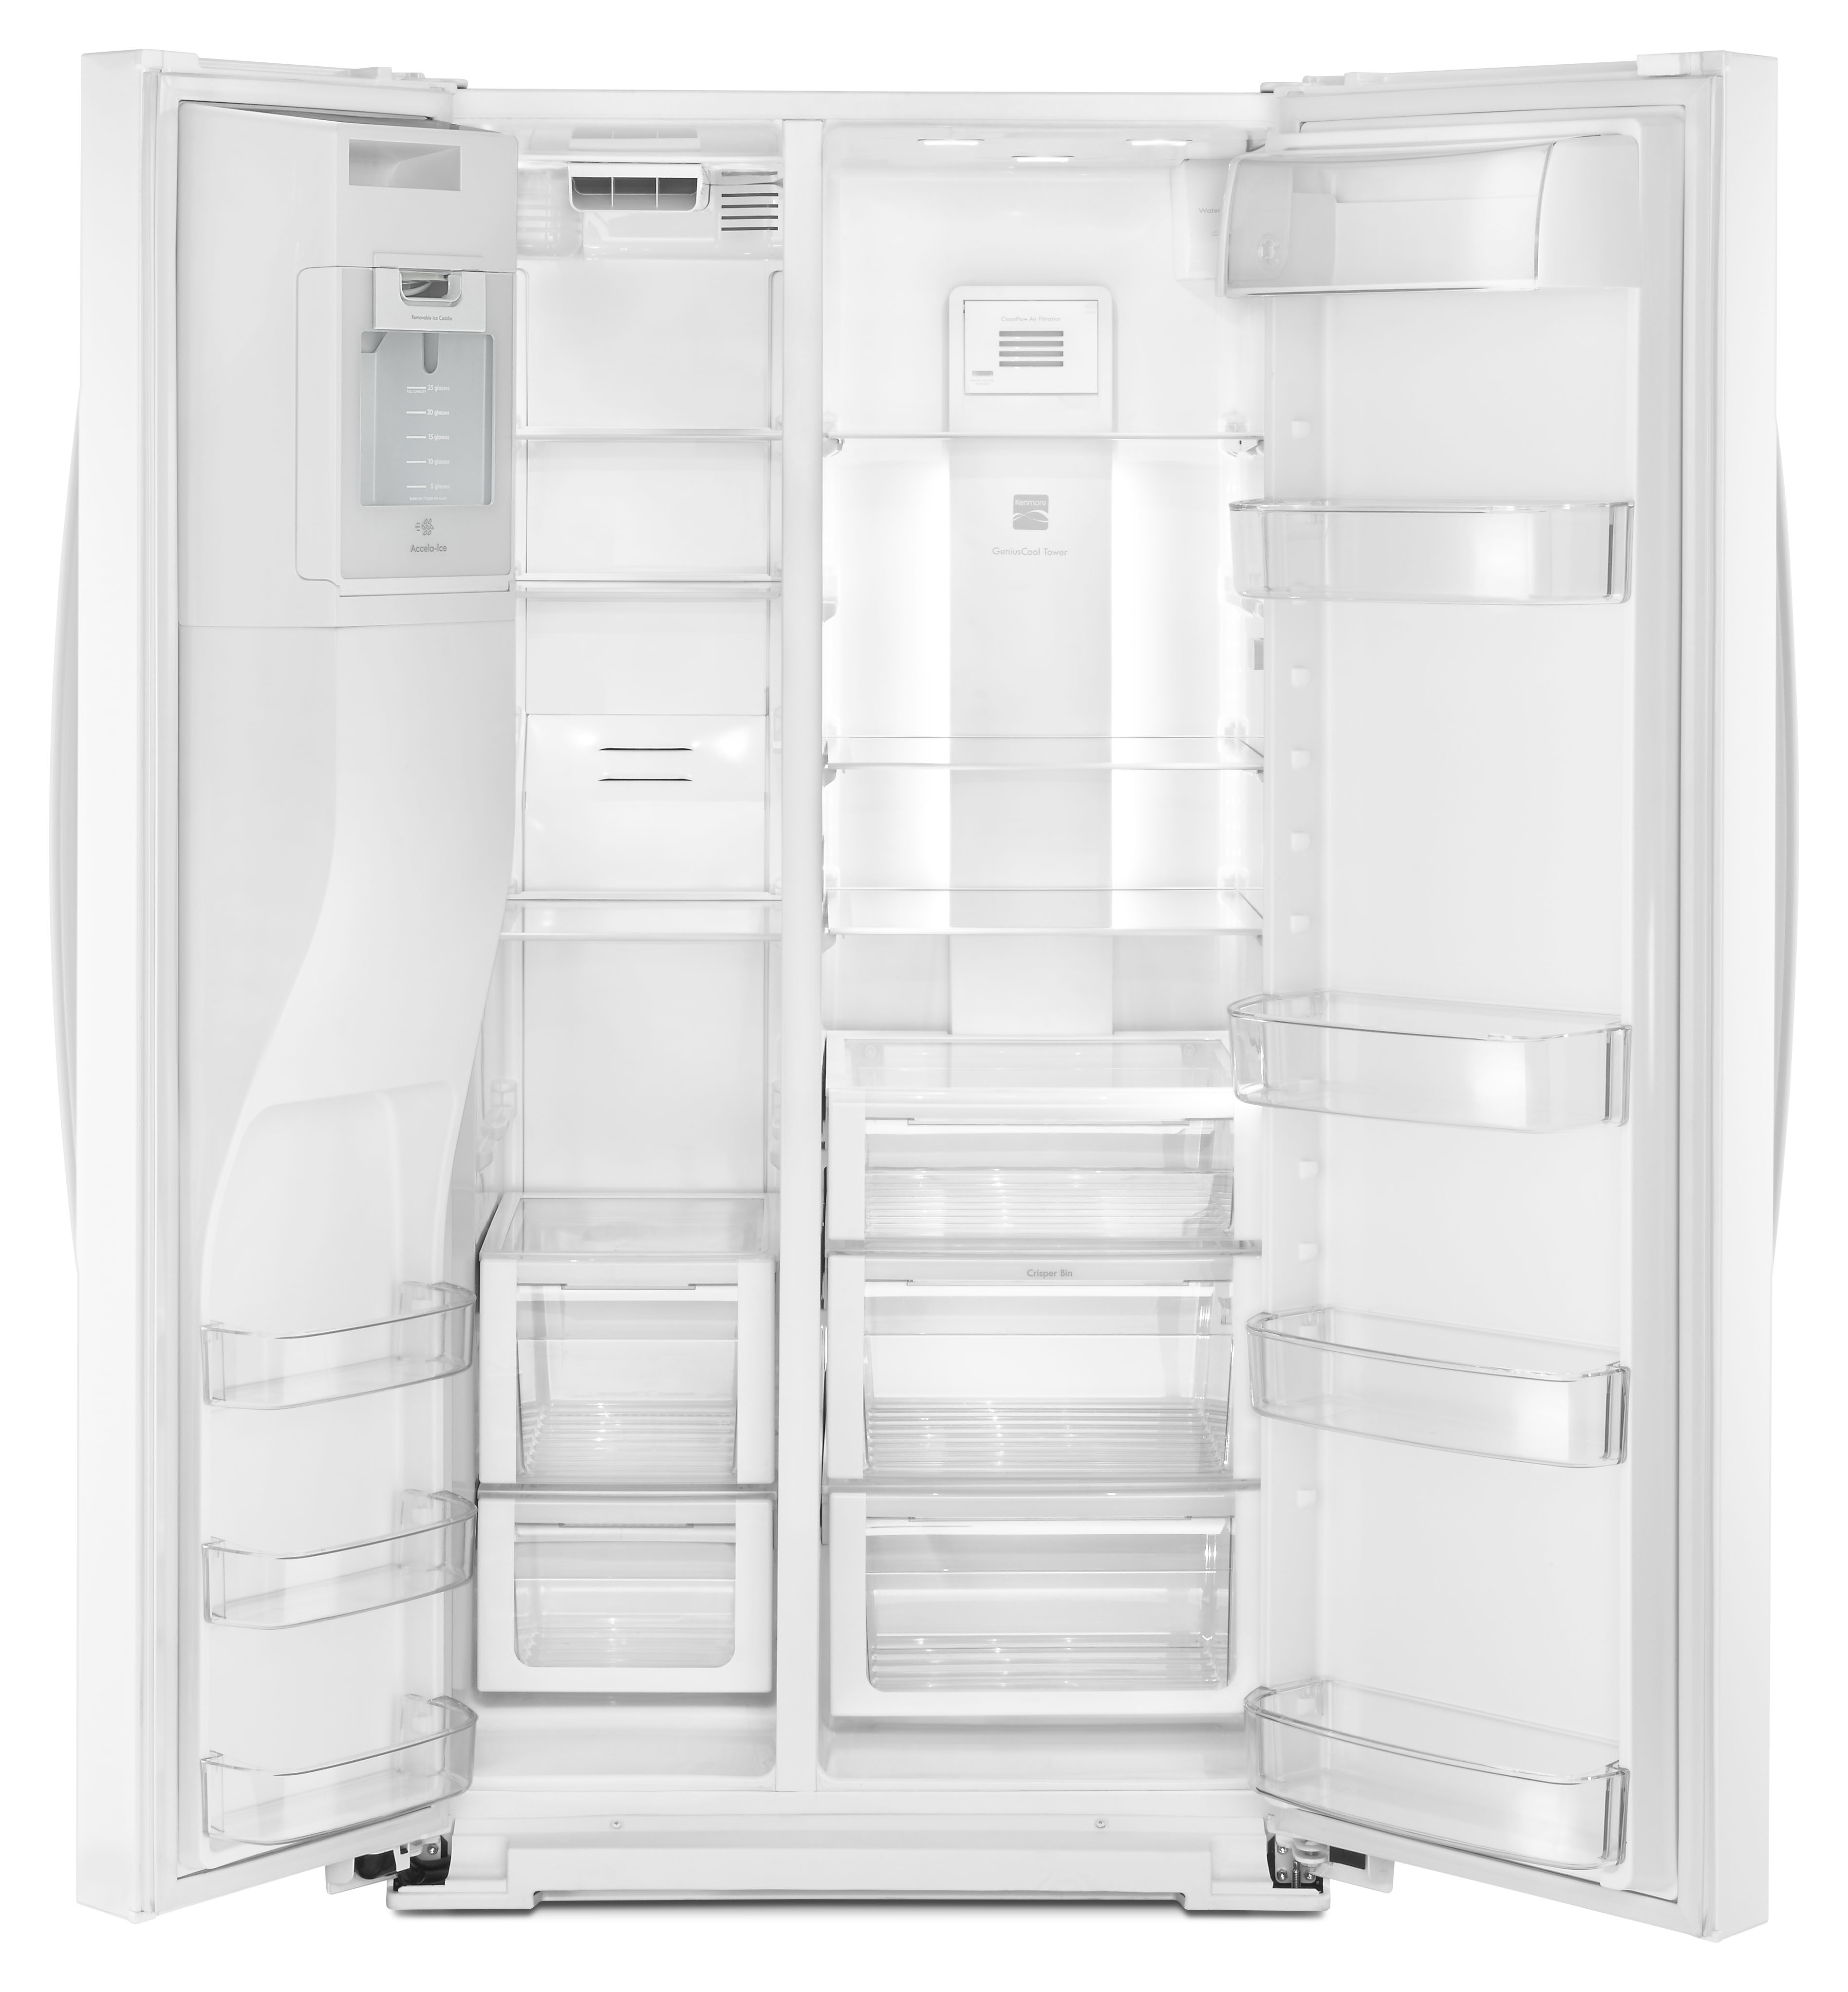 Kenmore 51762 25 cu. ft. Side-by-Side Refrigerator - White